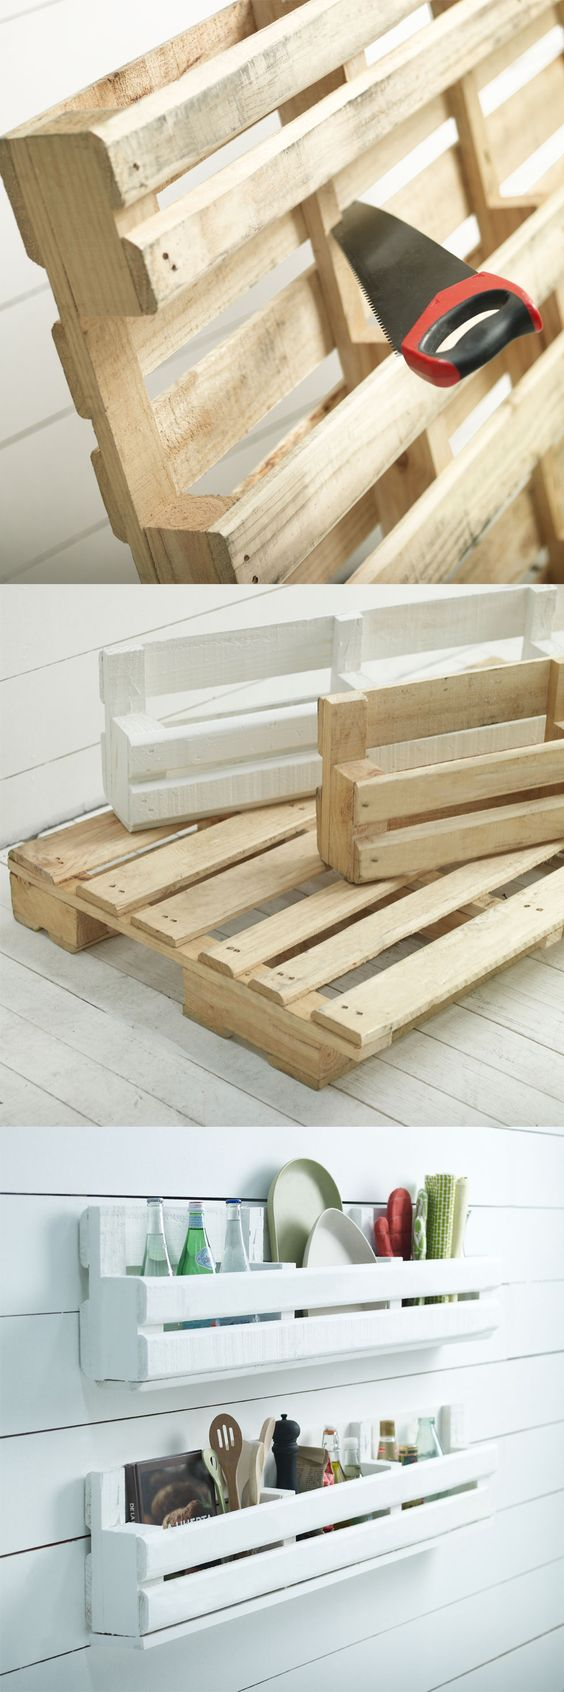 Great idea for storage and organization without taking up too much space.: